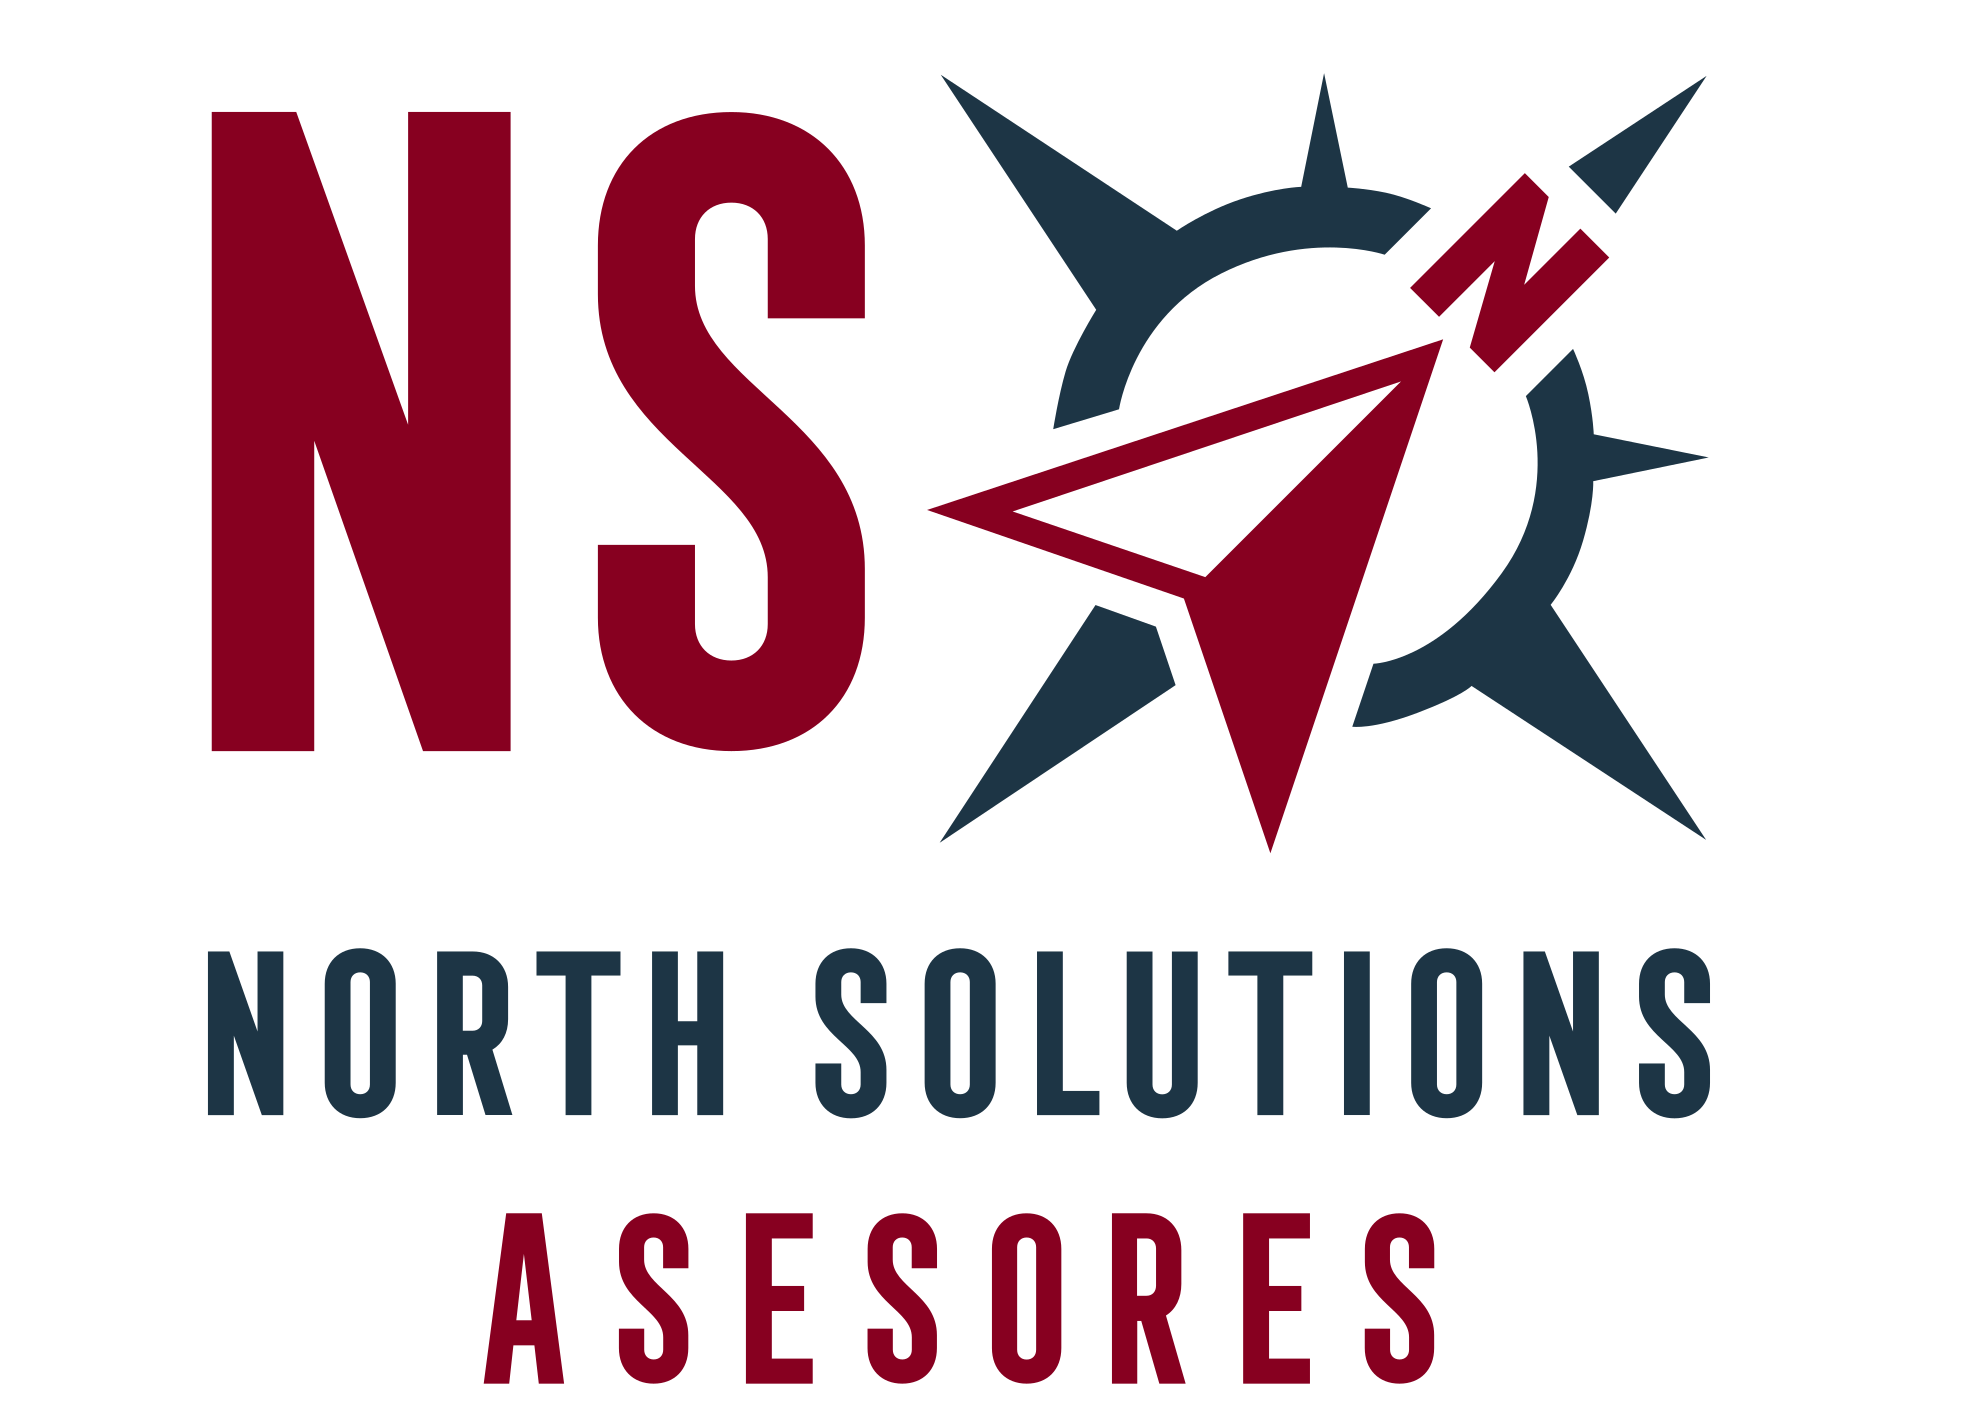 North Solutions